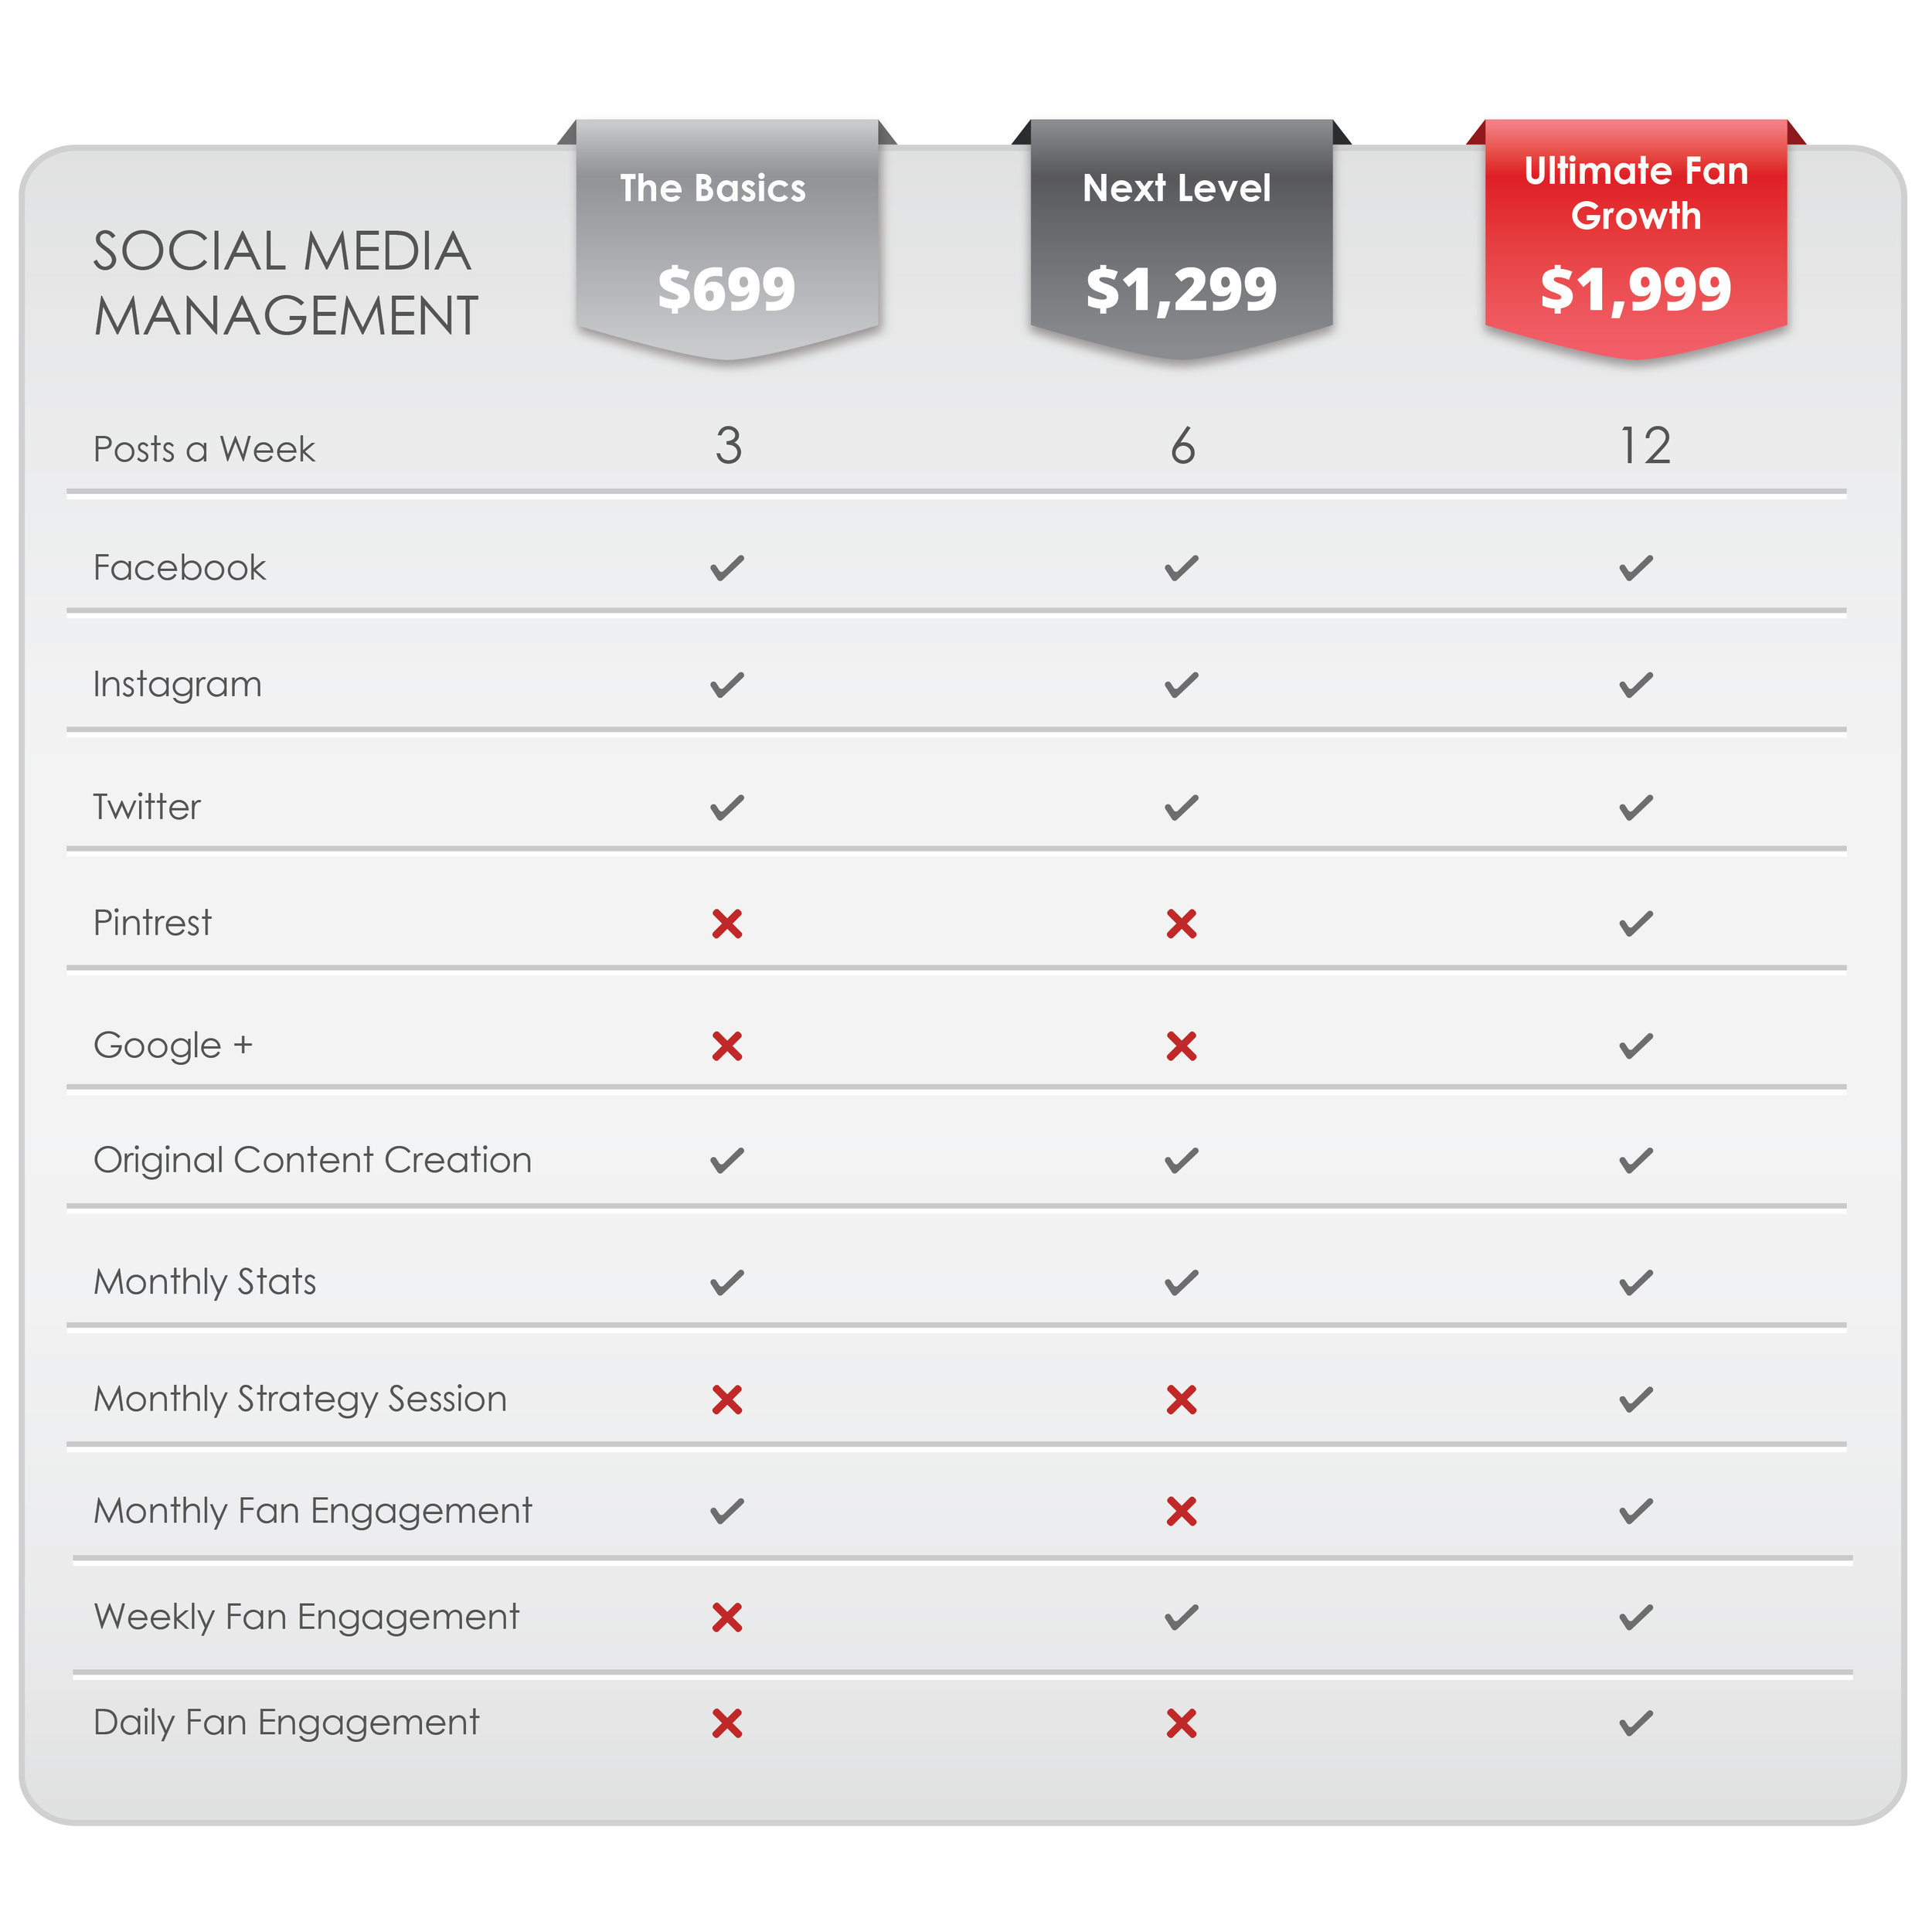 Social Media Mangement - Depending on how much engagement and or growth you need I will manage all your social media platforms with your goals in mind. With packages featuring 3-12 posts a week I will post for you and grow your audience for maximum impact.